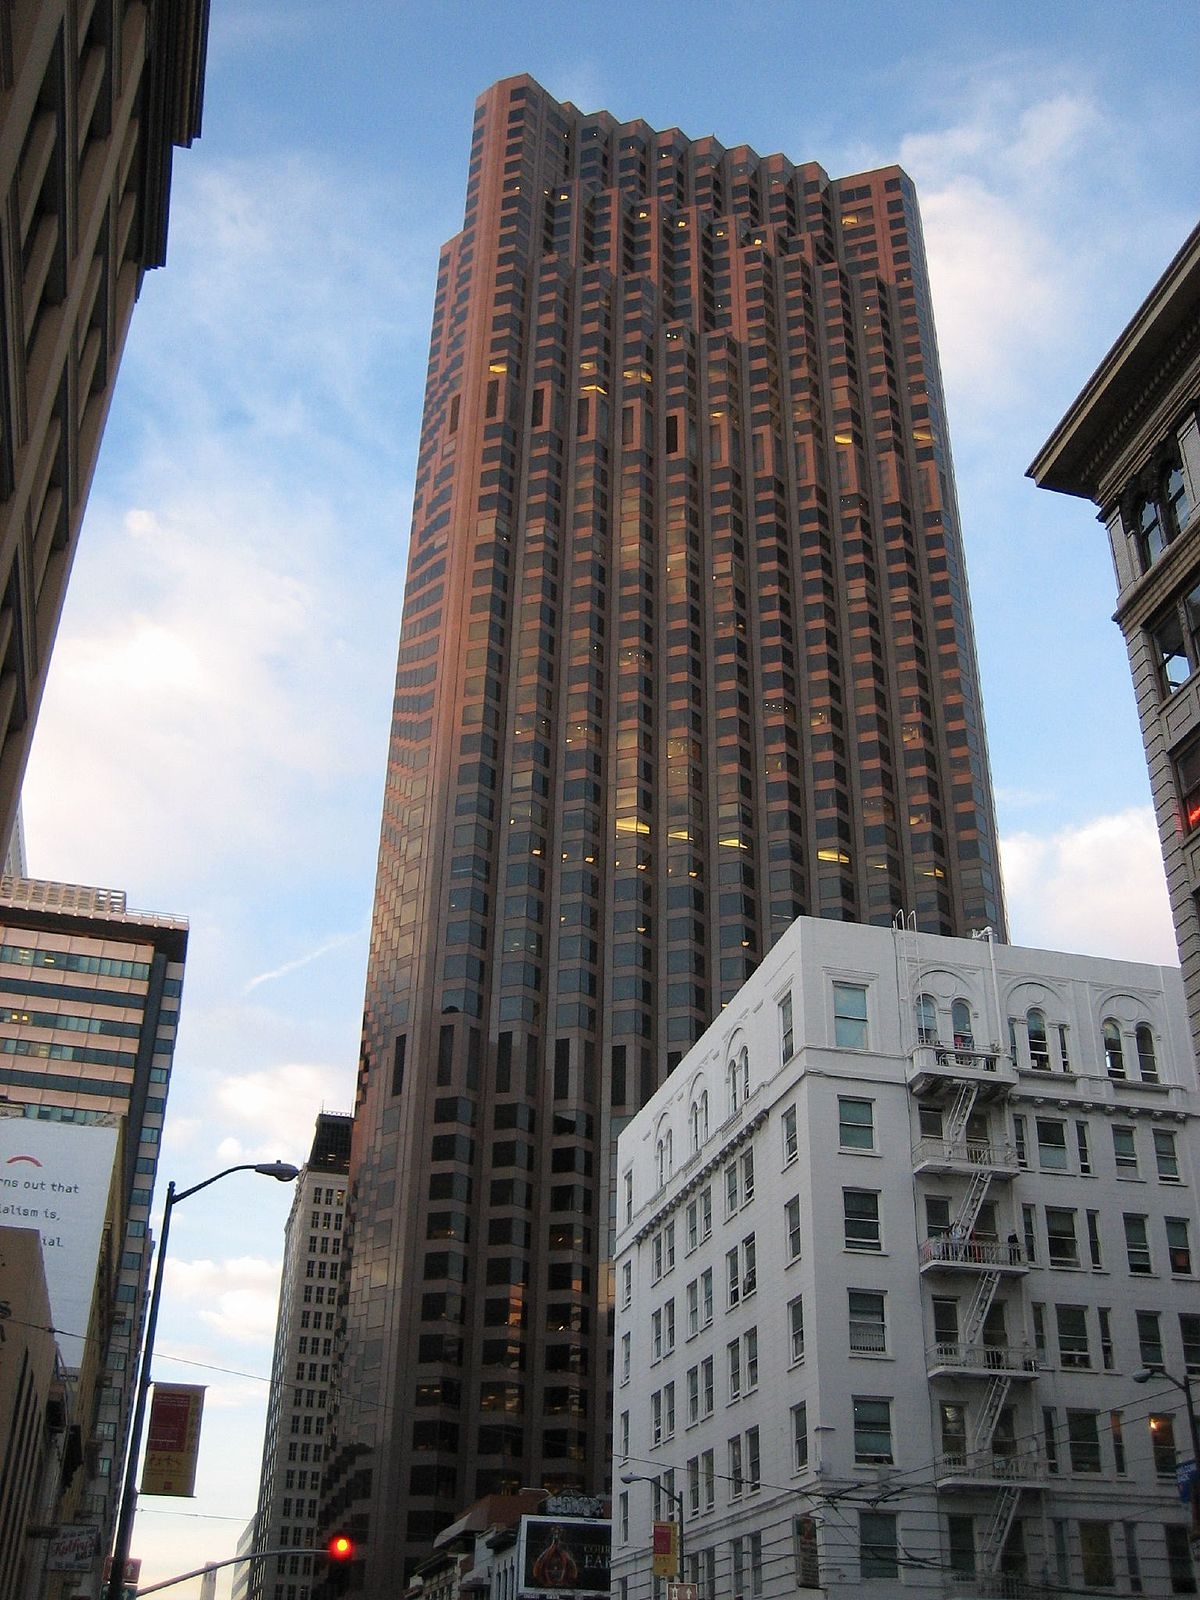 555 California Street - Wikipedia